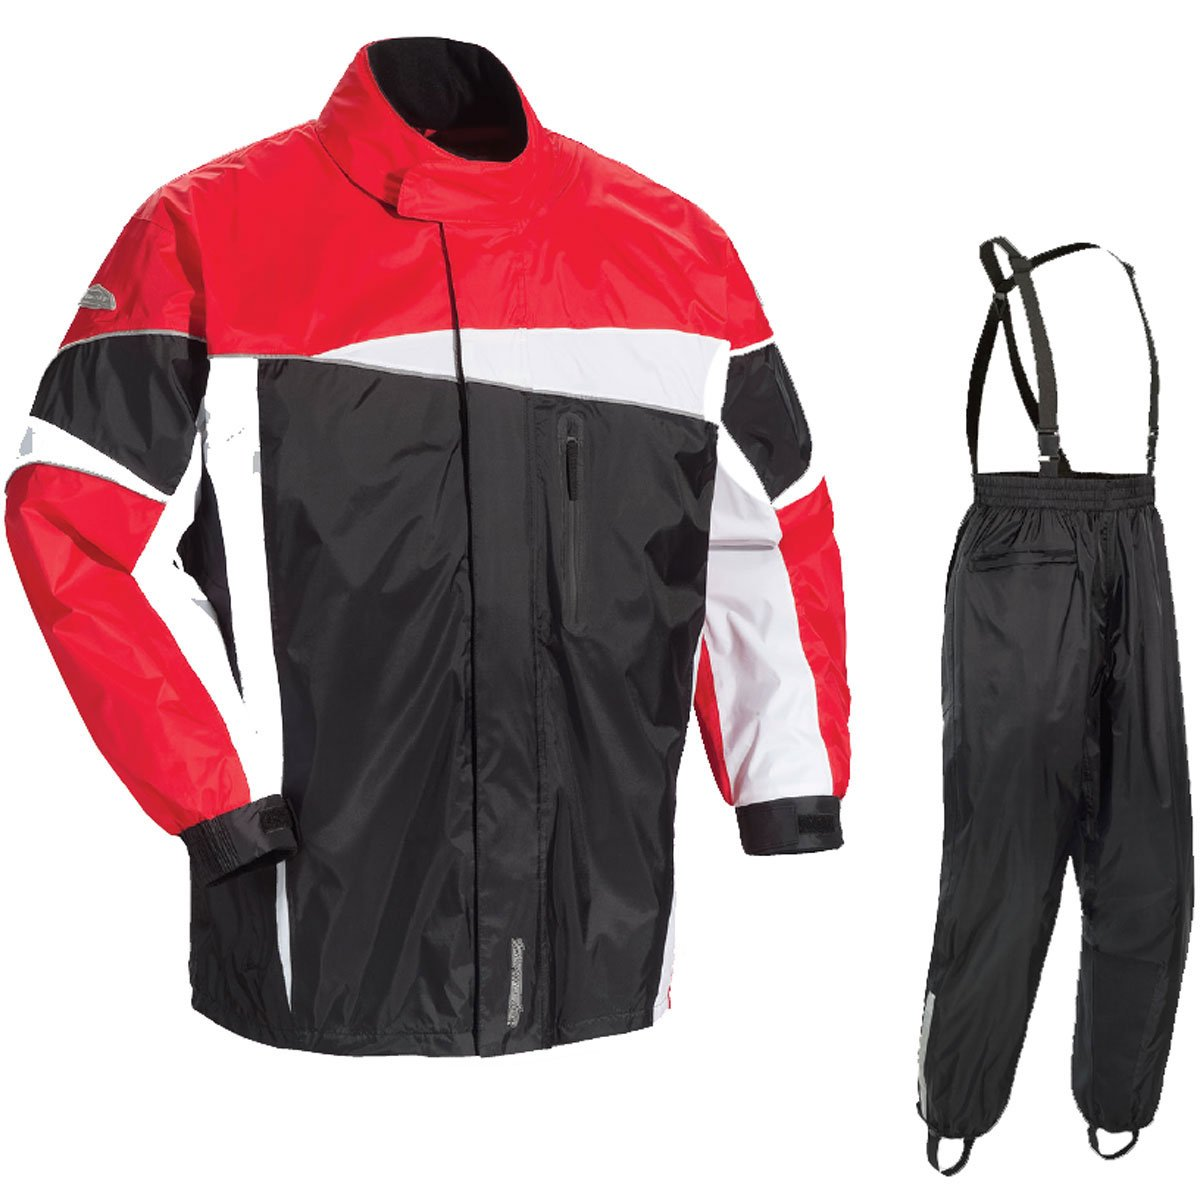 Tour Master Defender 2.0 Men's 2-Piece Street Bike Racing Motorcycle Rain Suit - Black/Red 2X-Large